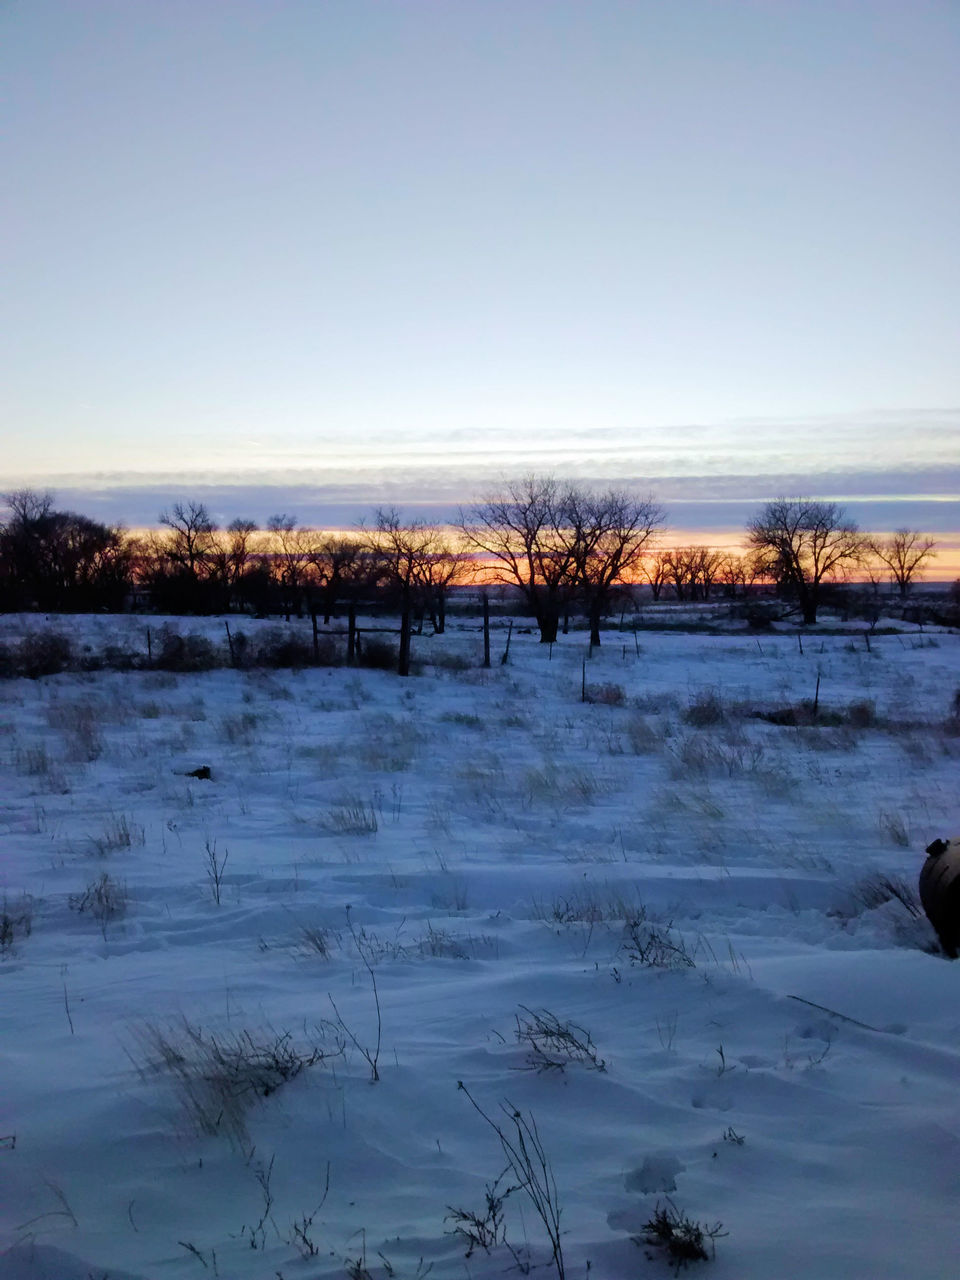 winter, cold temperature, snow, nature, cold, tranquil scene, tranquility, landscape, beauty in nature, tree, bare tree, scenics, frozen, outdoors, no people, sky, sunset, day, clear sky